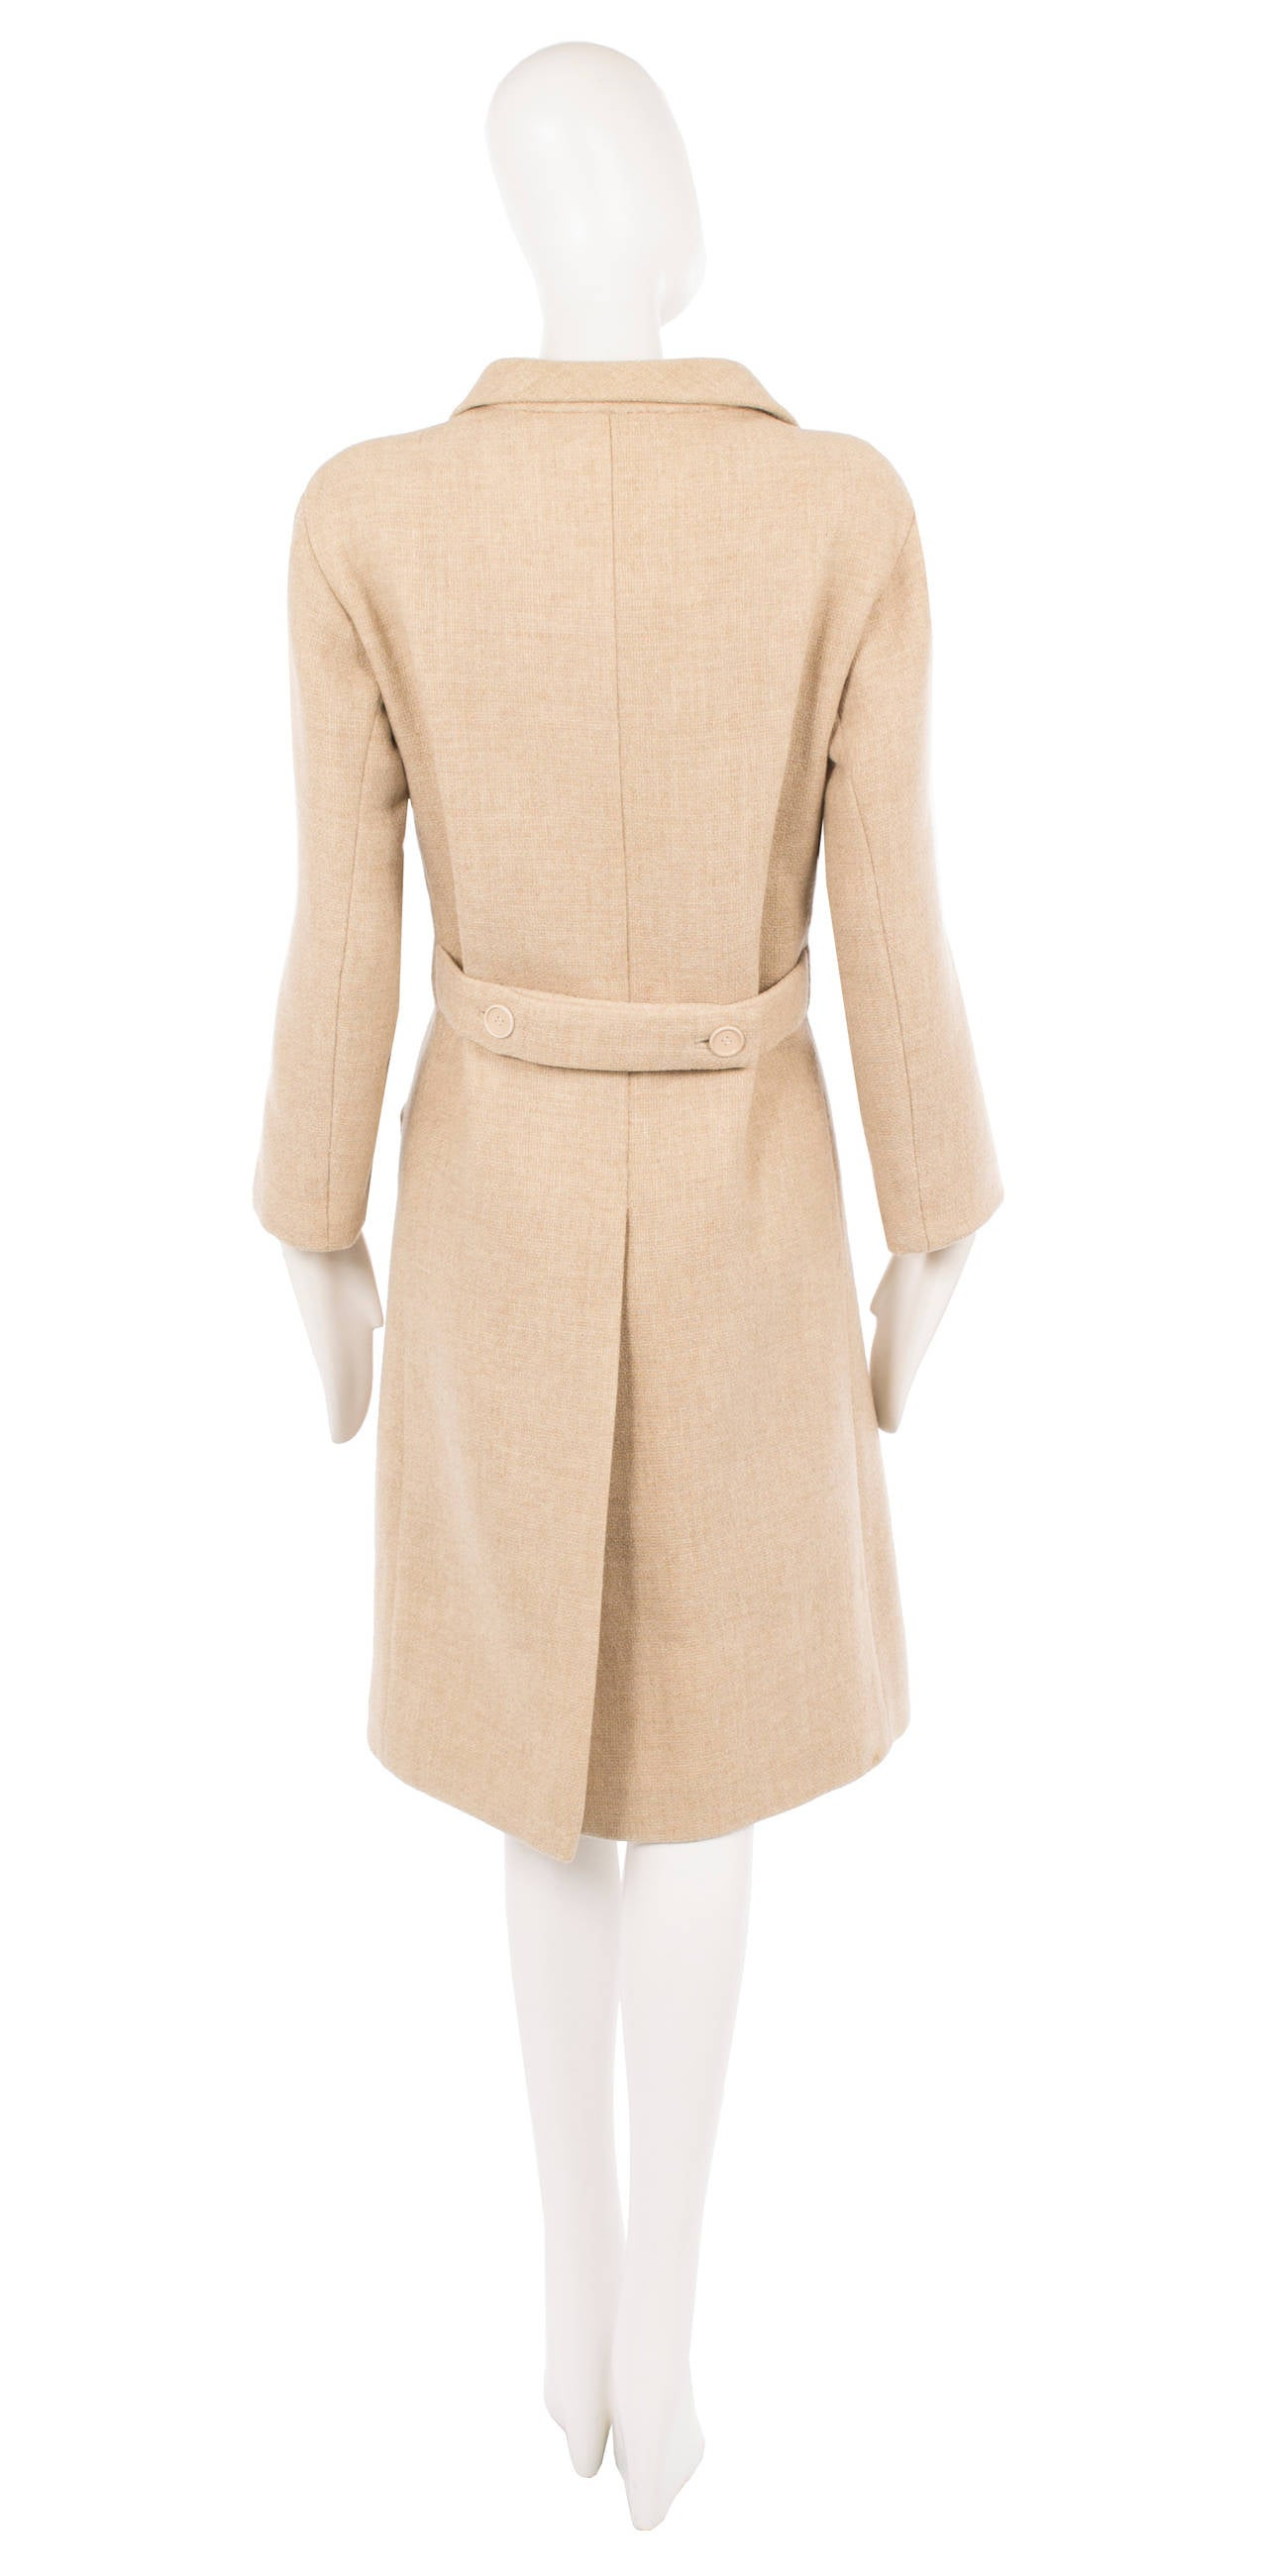 Balenciaga haute couture oatmeal wool coat, circa 1968 In Excellent Condition For Sale In London, GB